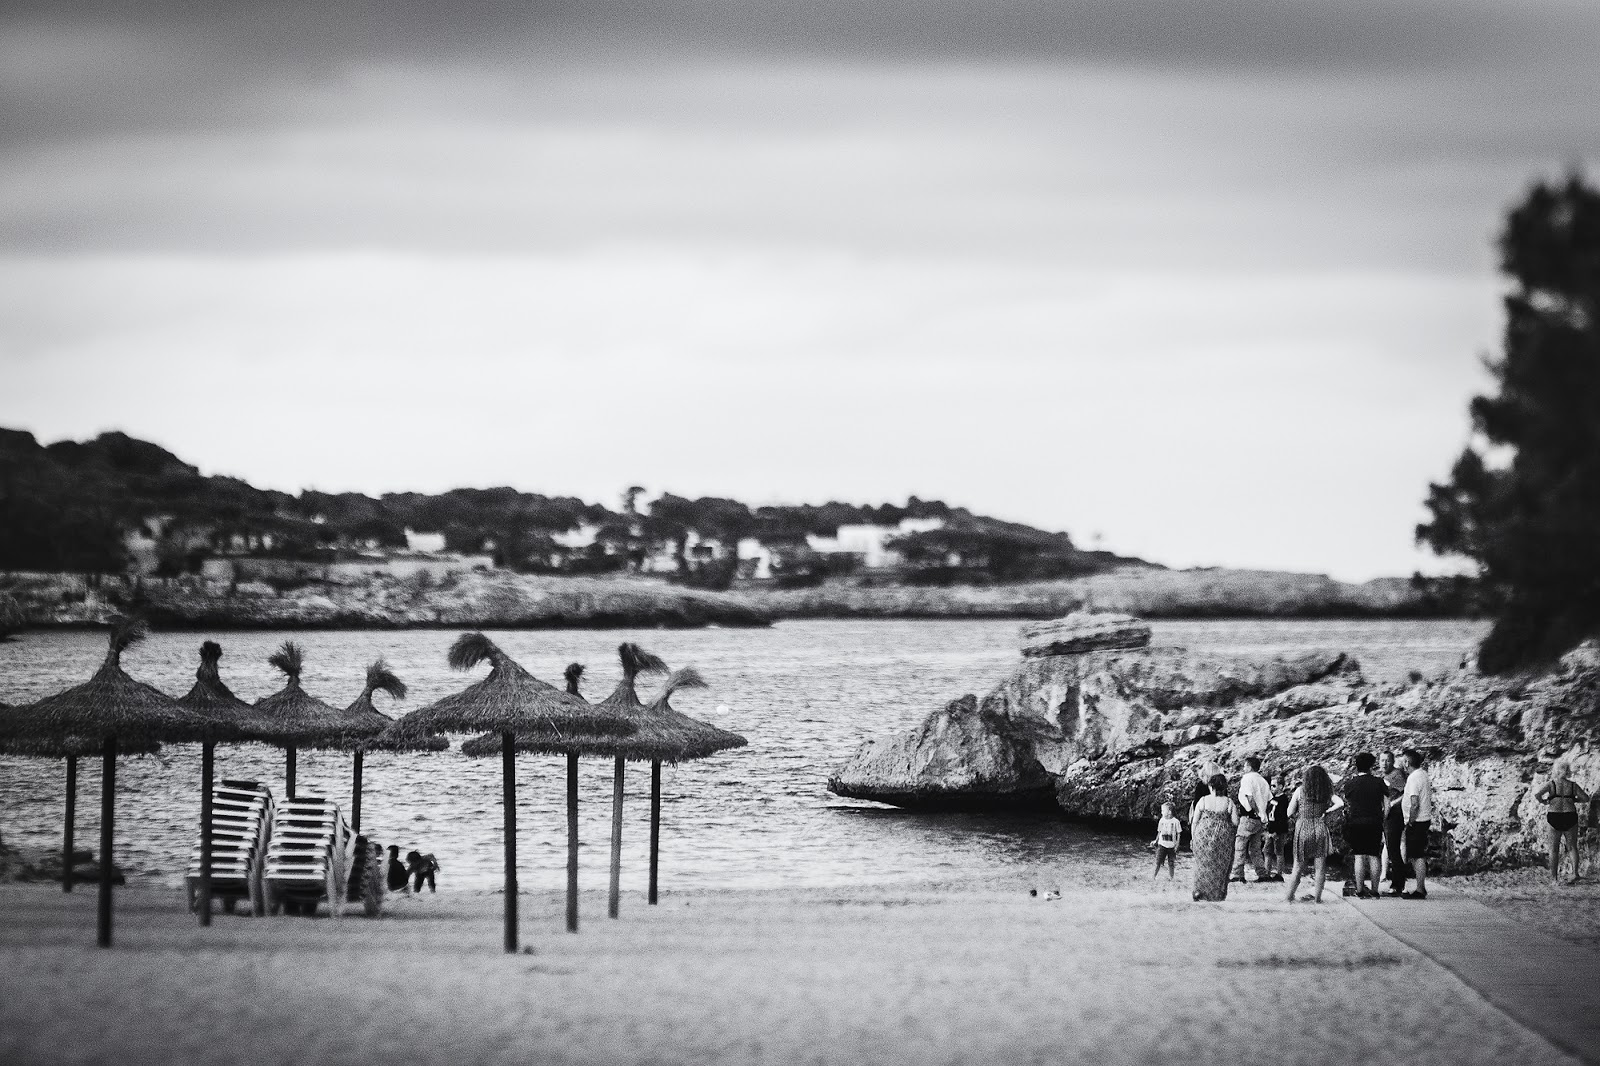 image of Mallorca beach by Willie Kers